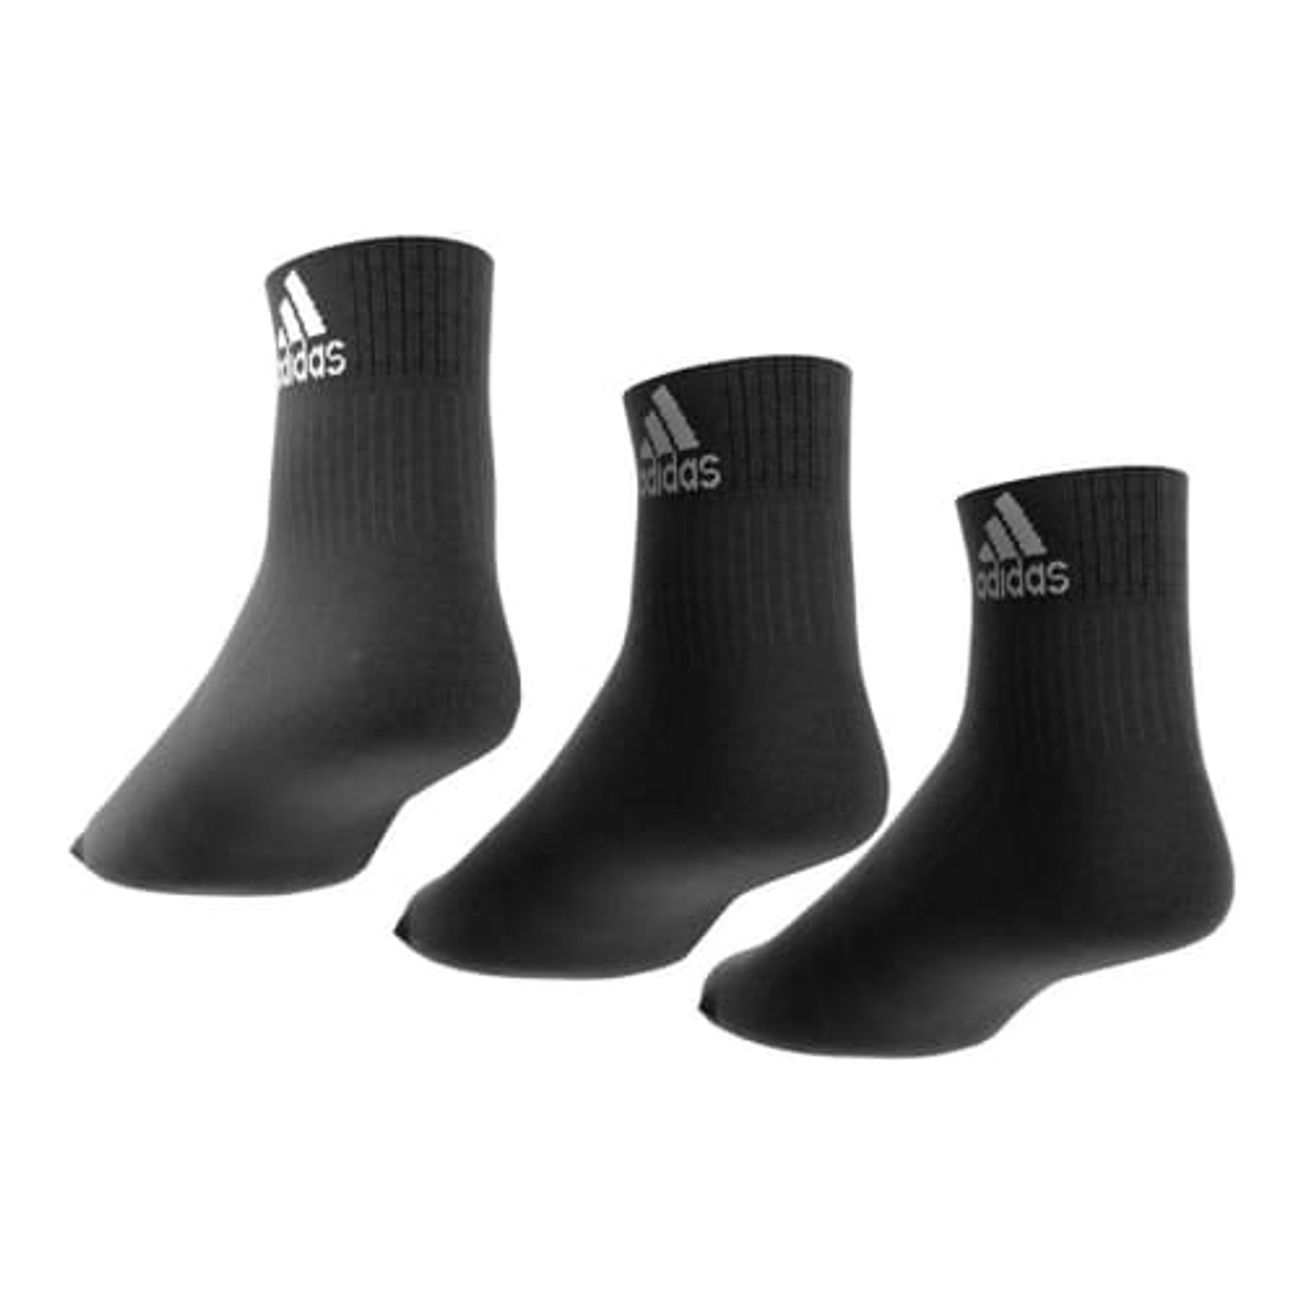 ModeLifestyle An 3s Adidas Homme Hc Soquettes 3p Per Performance 7Yygb6f